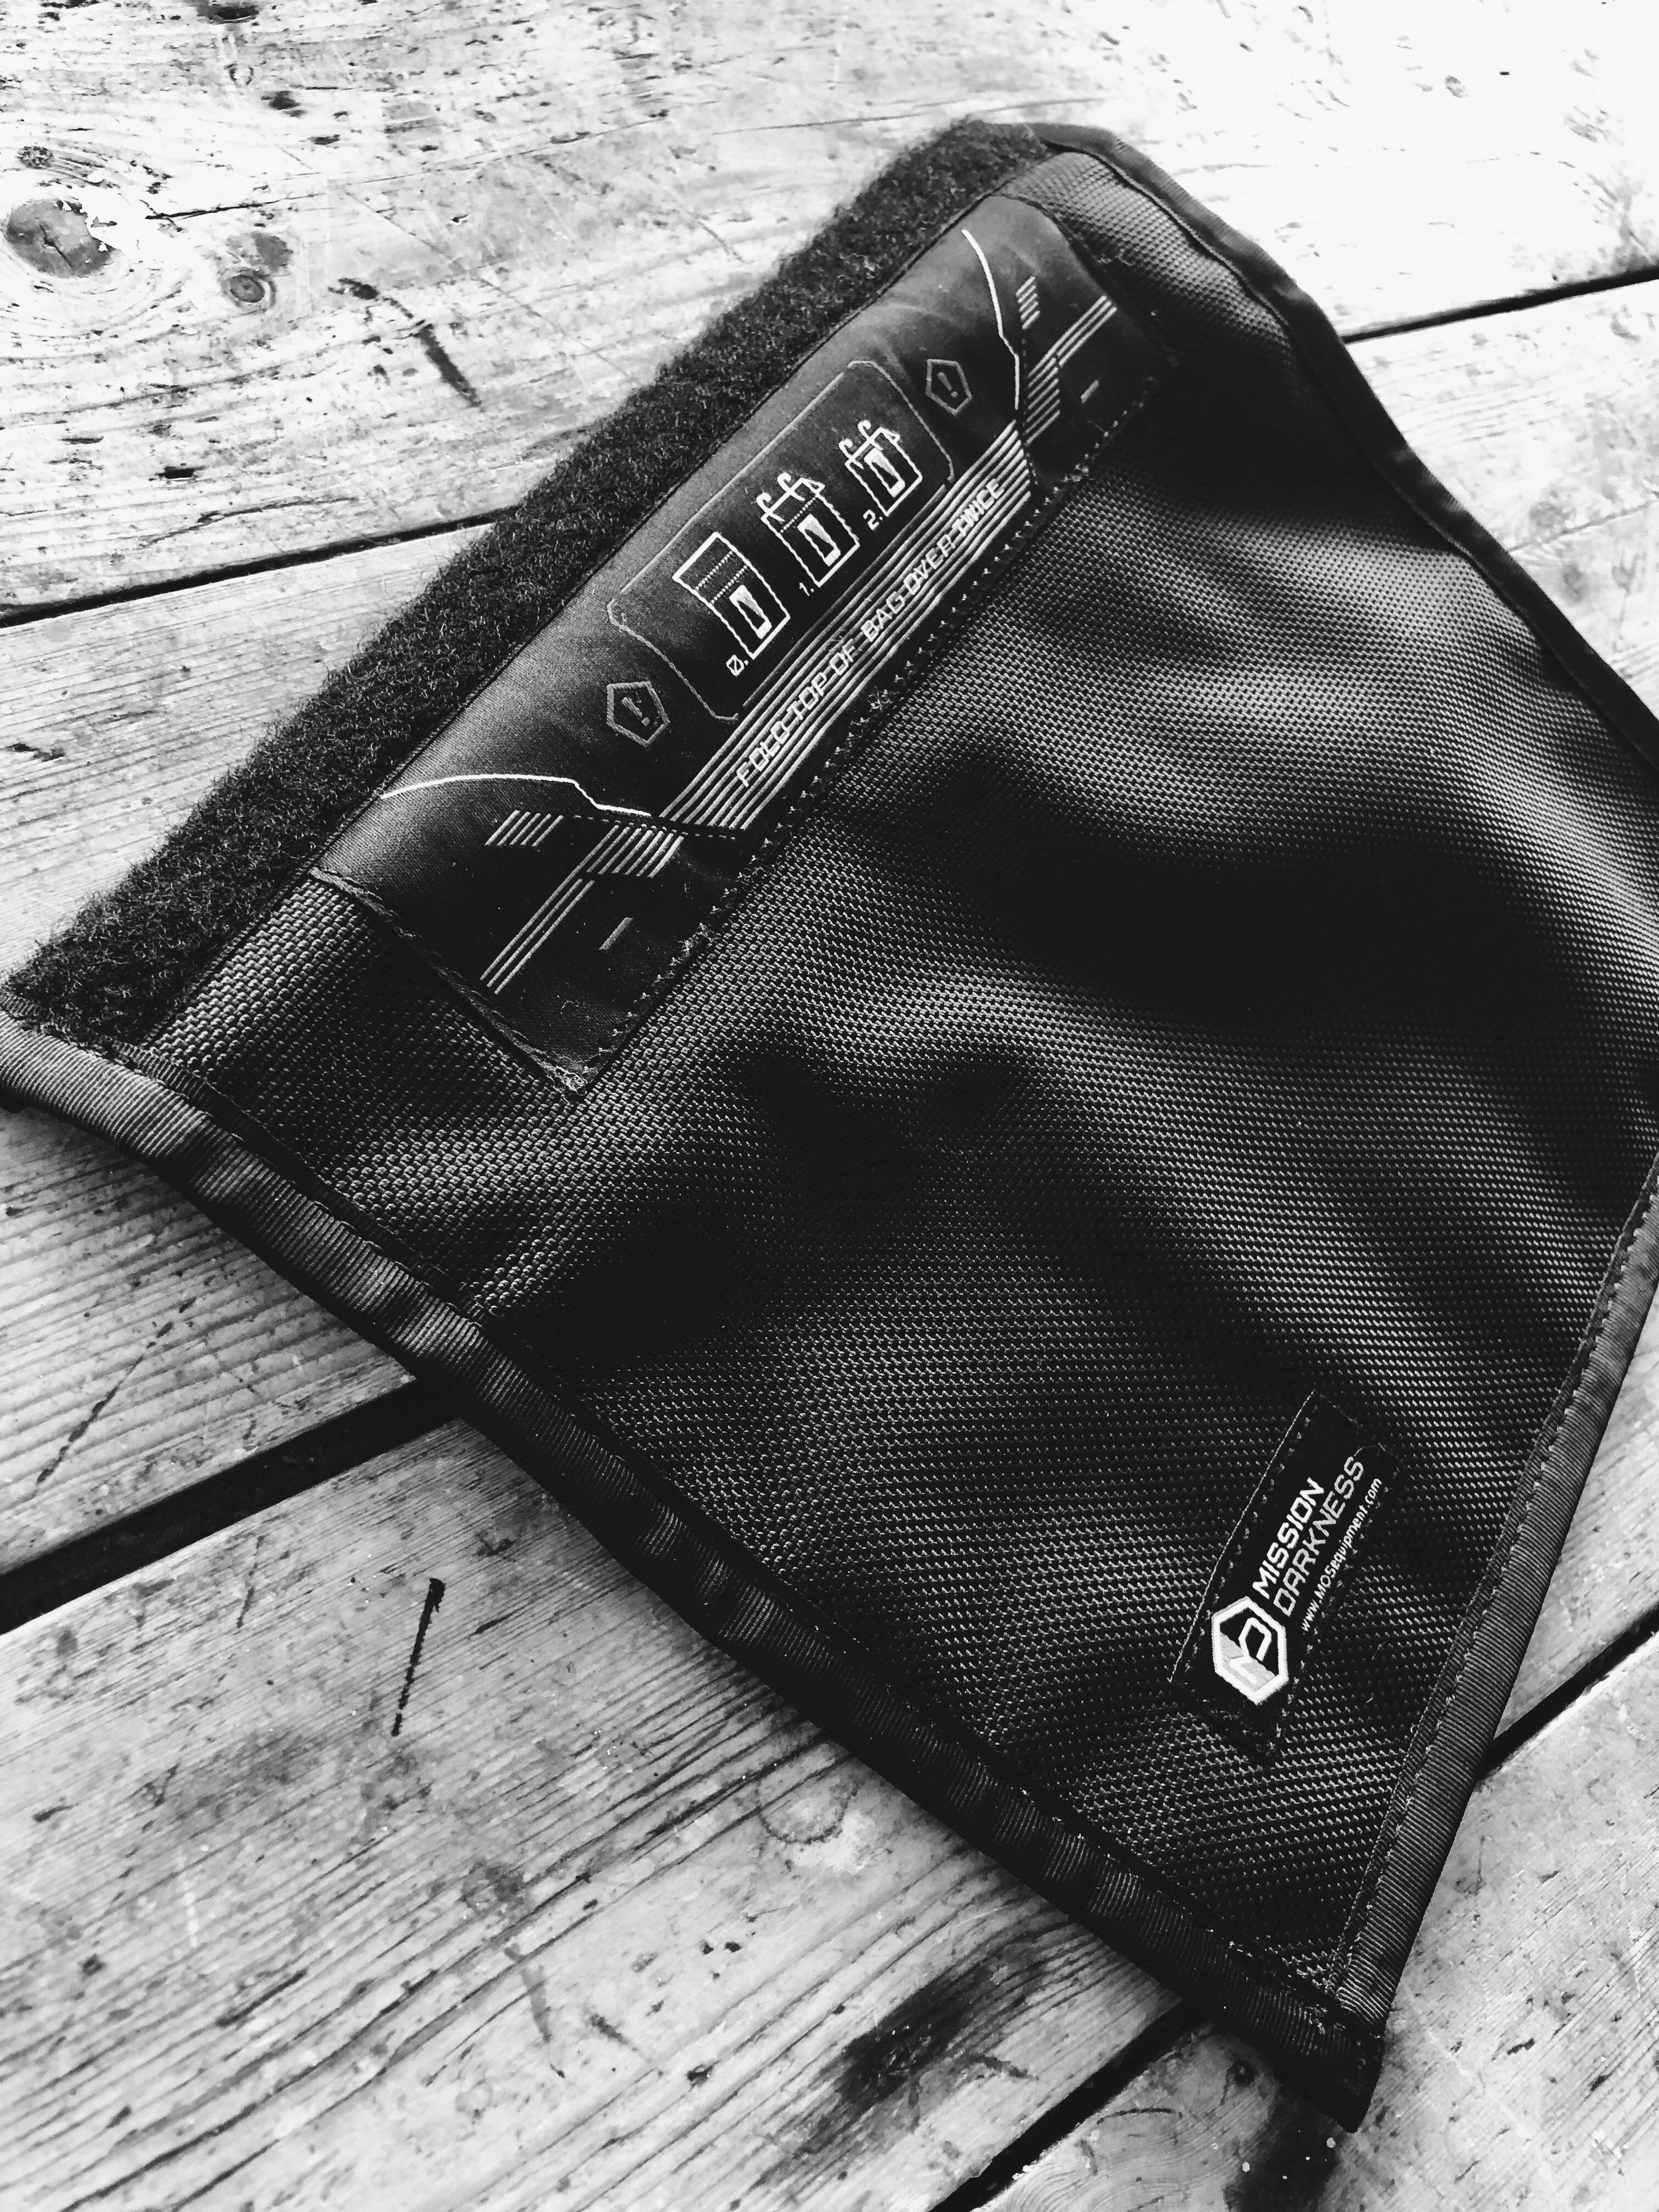 At Sourced, - we travel a lot. We never send a team member abroad without the Mission Darkness Faraday Bag. That way, we keep our information just that,ours. It's small, easy to open and close, and obviously looks pretty sweet. Don't compromise your data... isolate your devices!Grab one here:https://mosequipment.com/